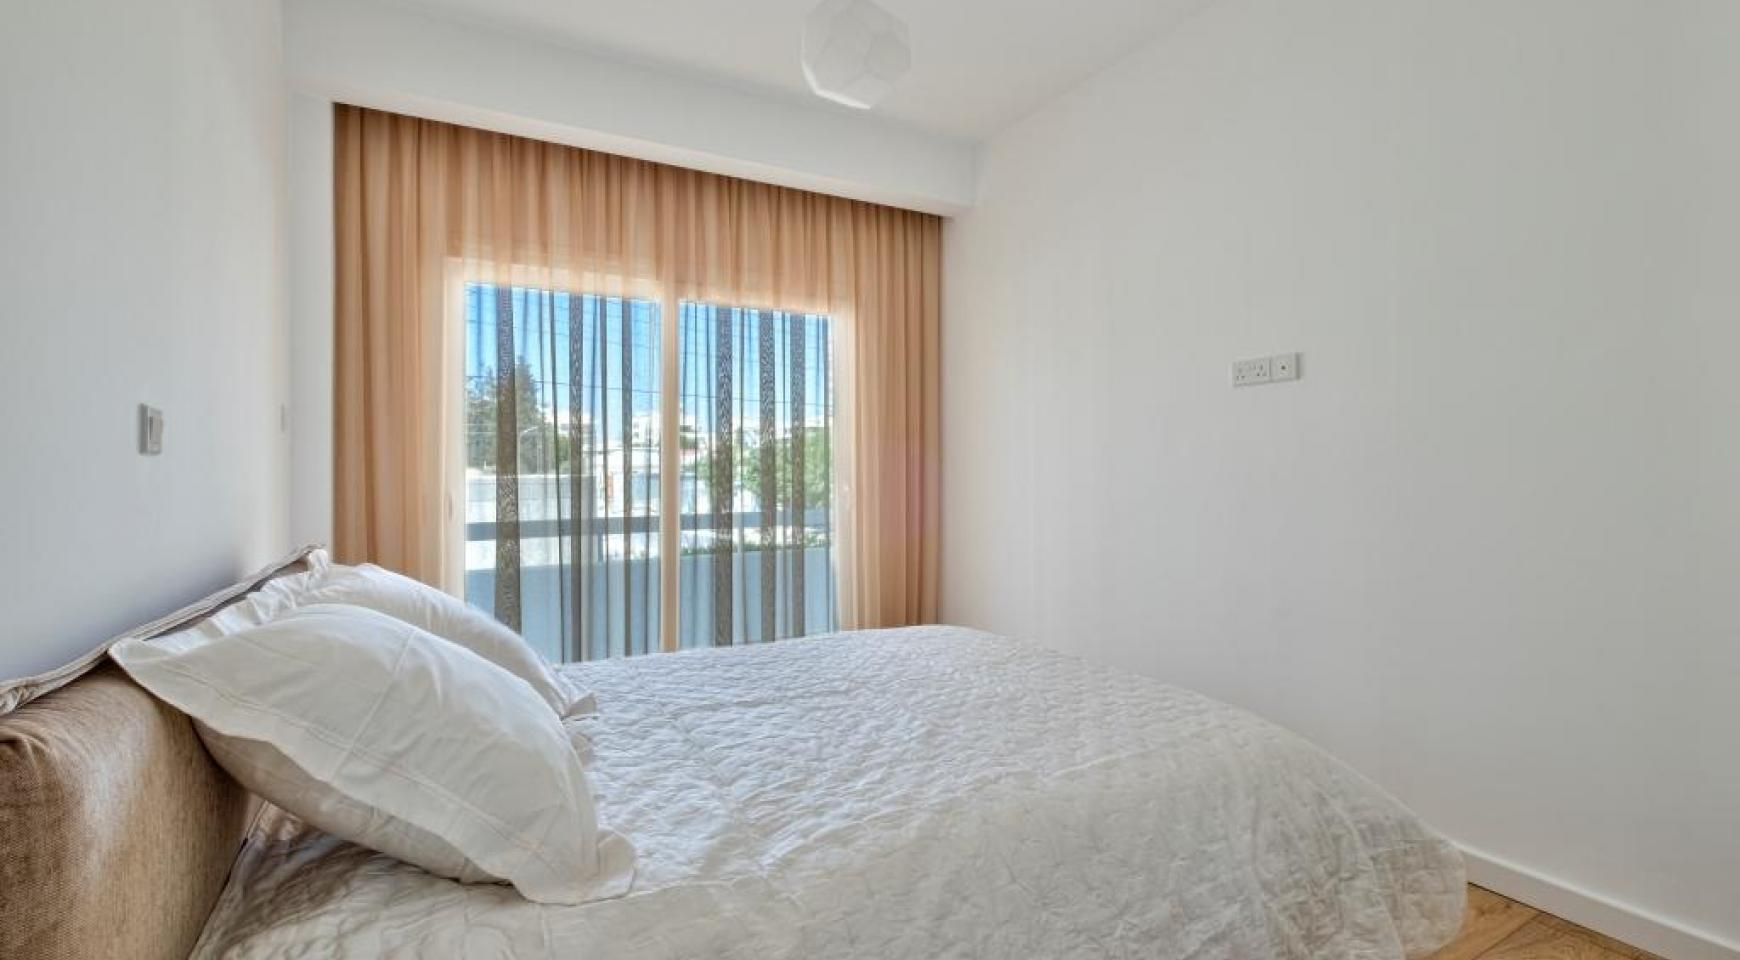 Modern 3 Bedroom Аpartment in Crown Plaza area - 11